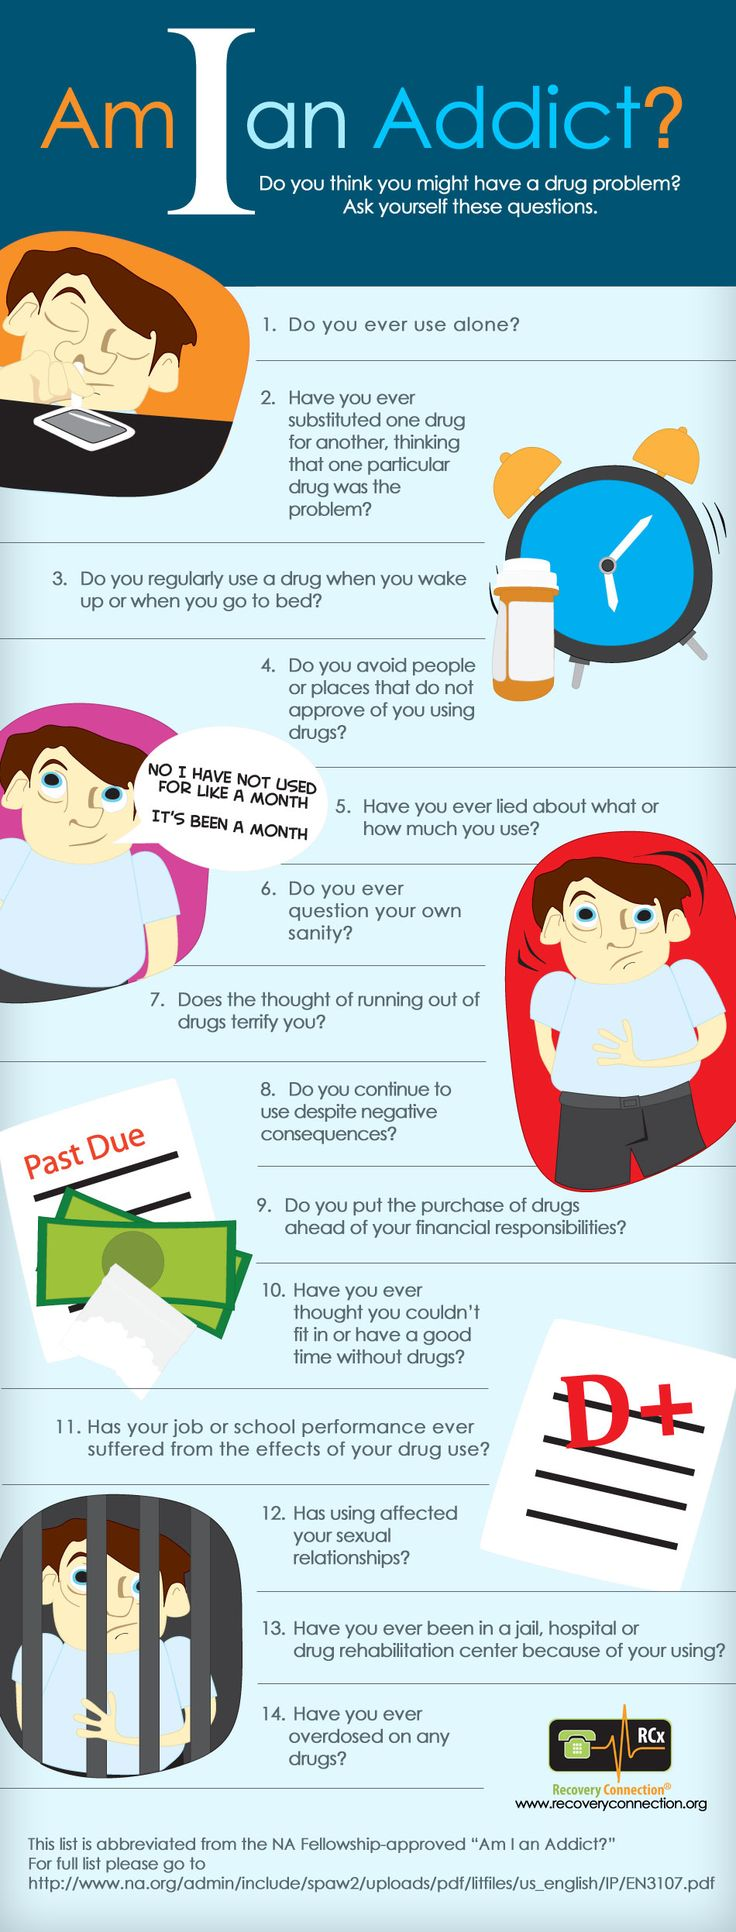 Am I a Drug Addict #Infographic. Sobriety is freedom!  Important questions to ask yourself if you use drugs. If yes was your answer to some of these questions, ask yourself if you're ready for change. If so, seek out the supports and treatments you need to live a healthy, sober life.